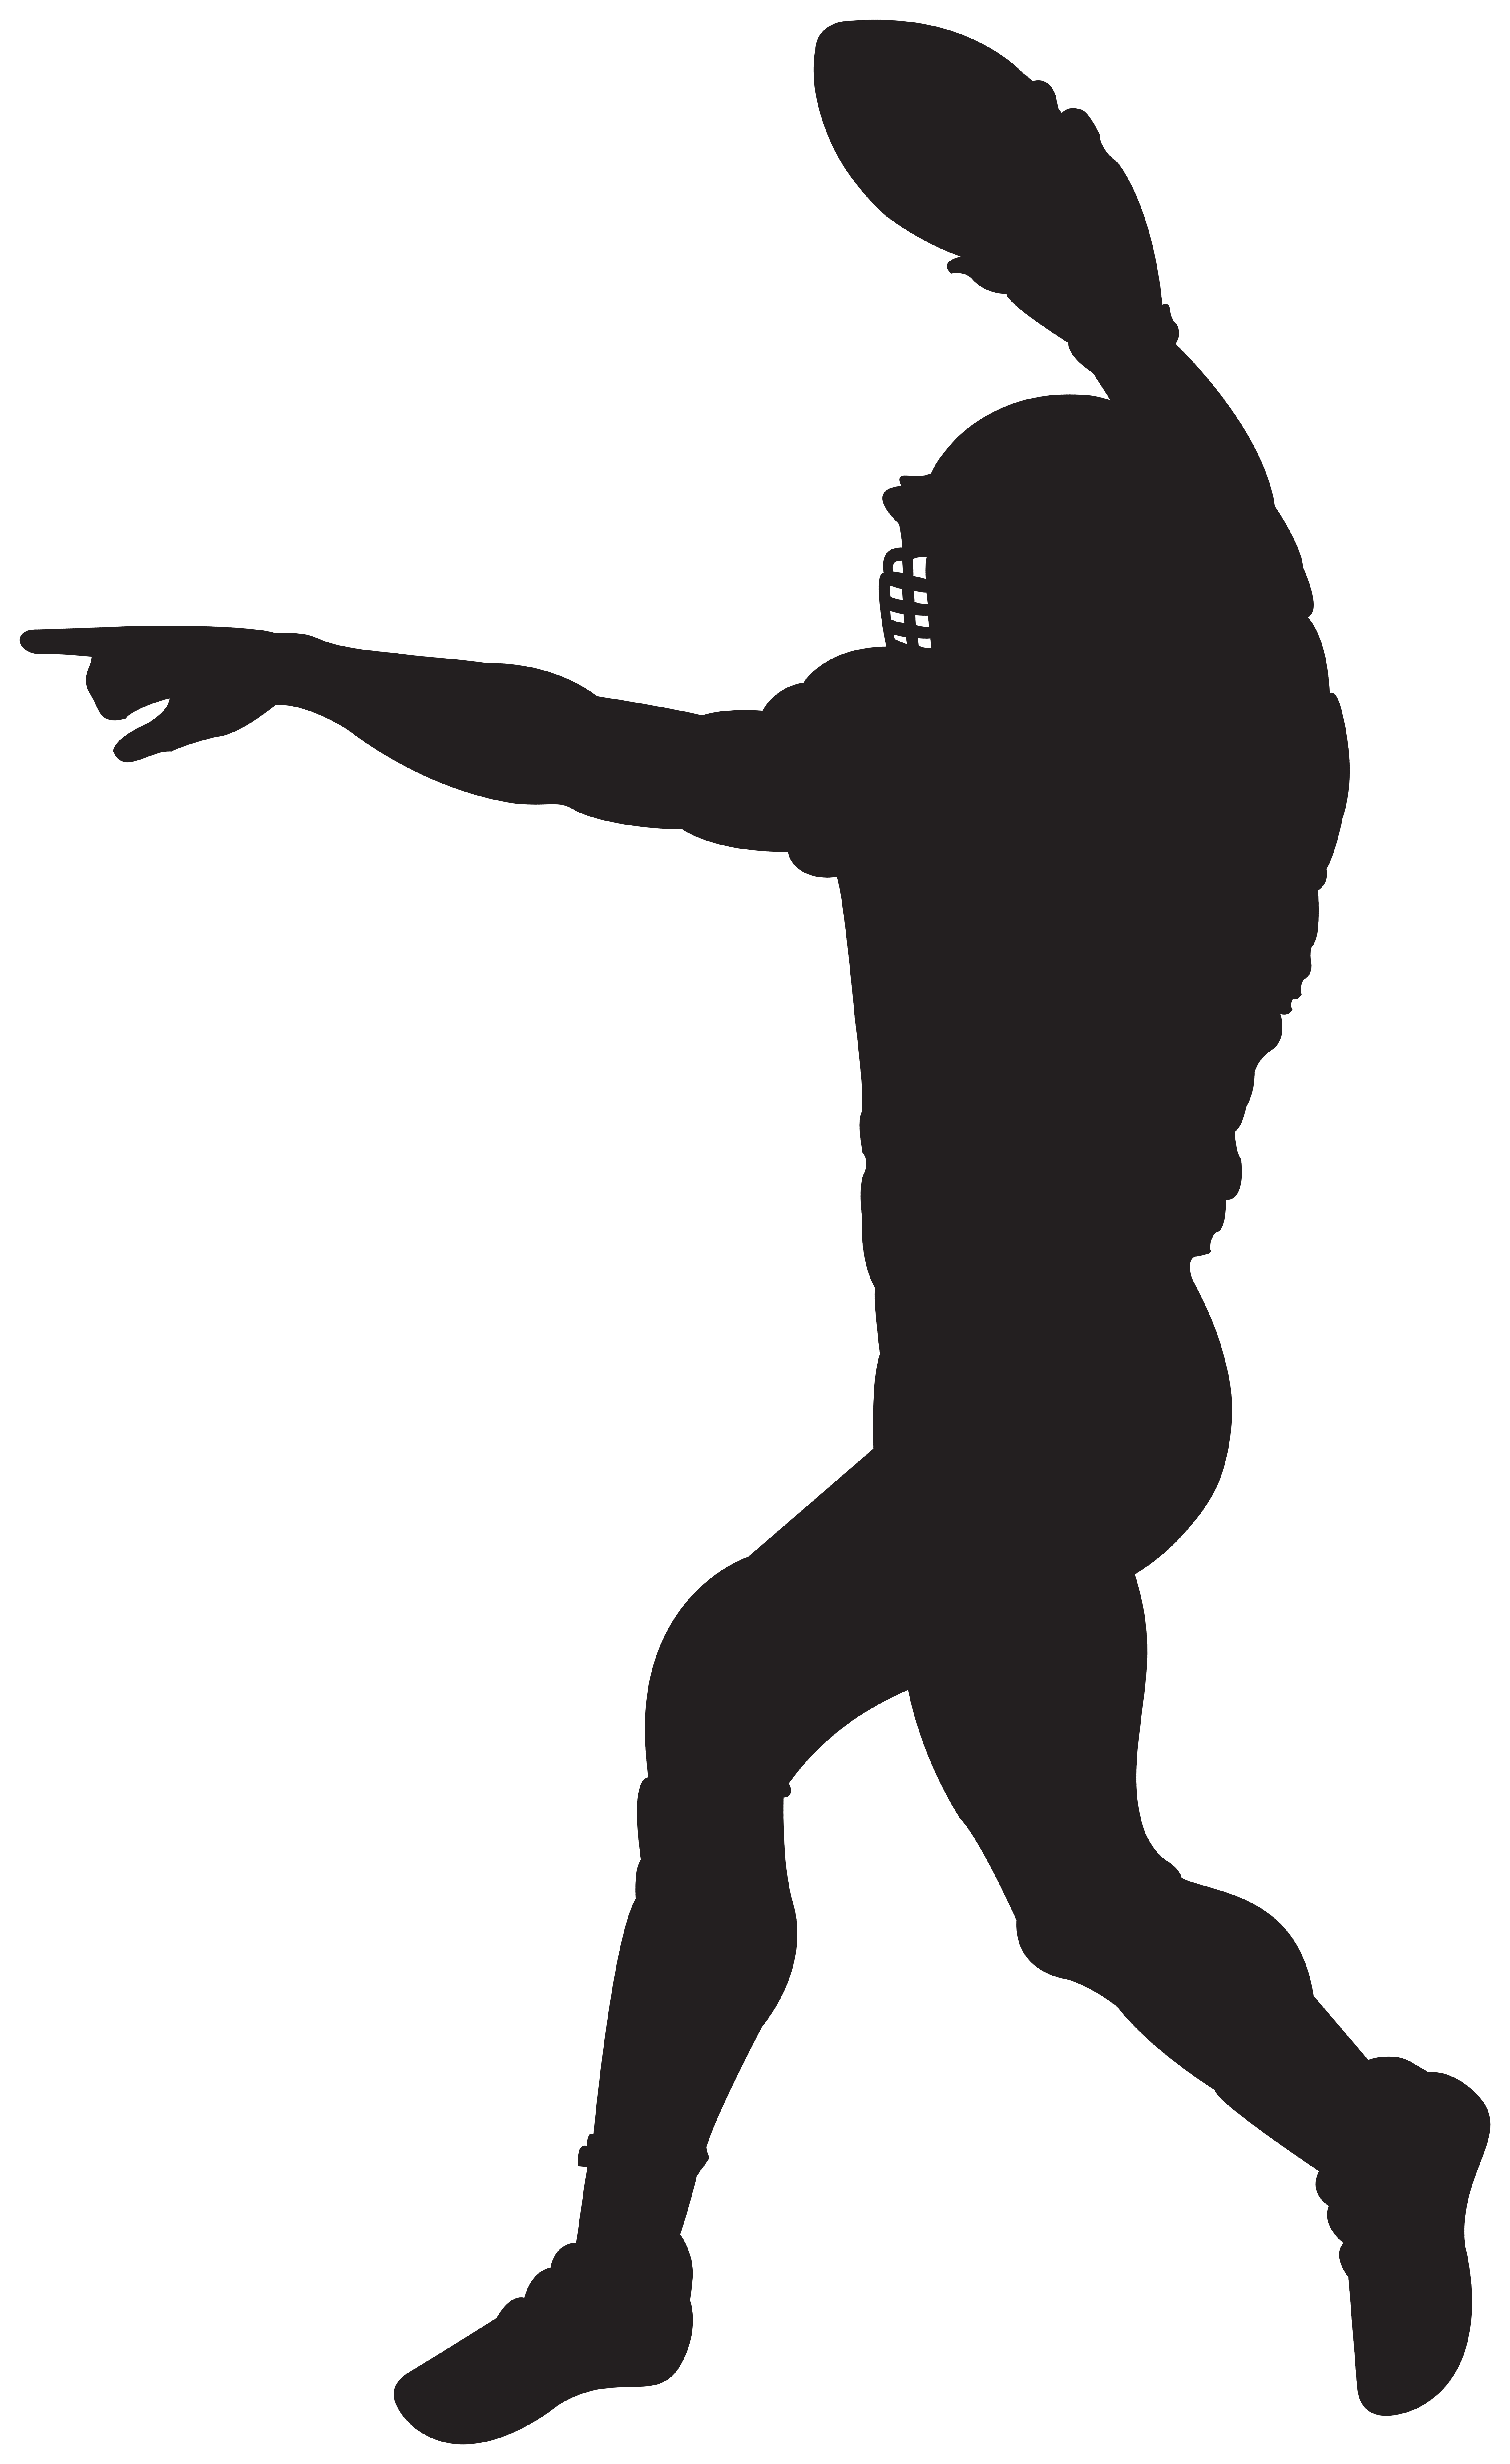 small resolution of american football player silhouette clipart image